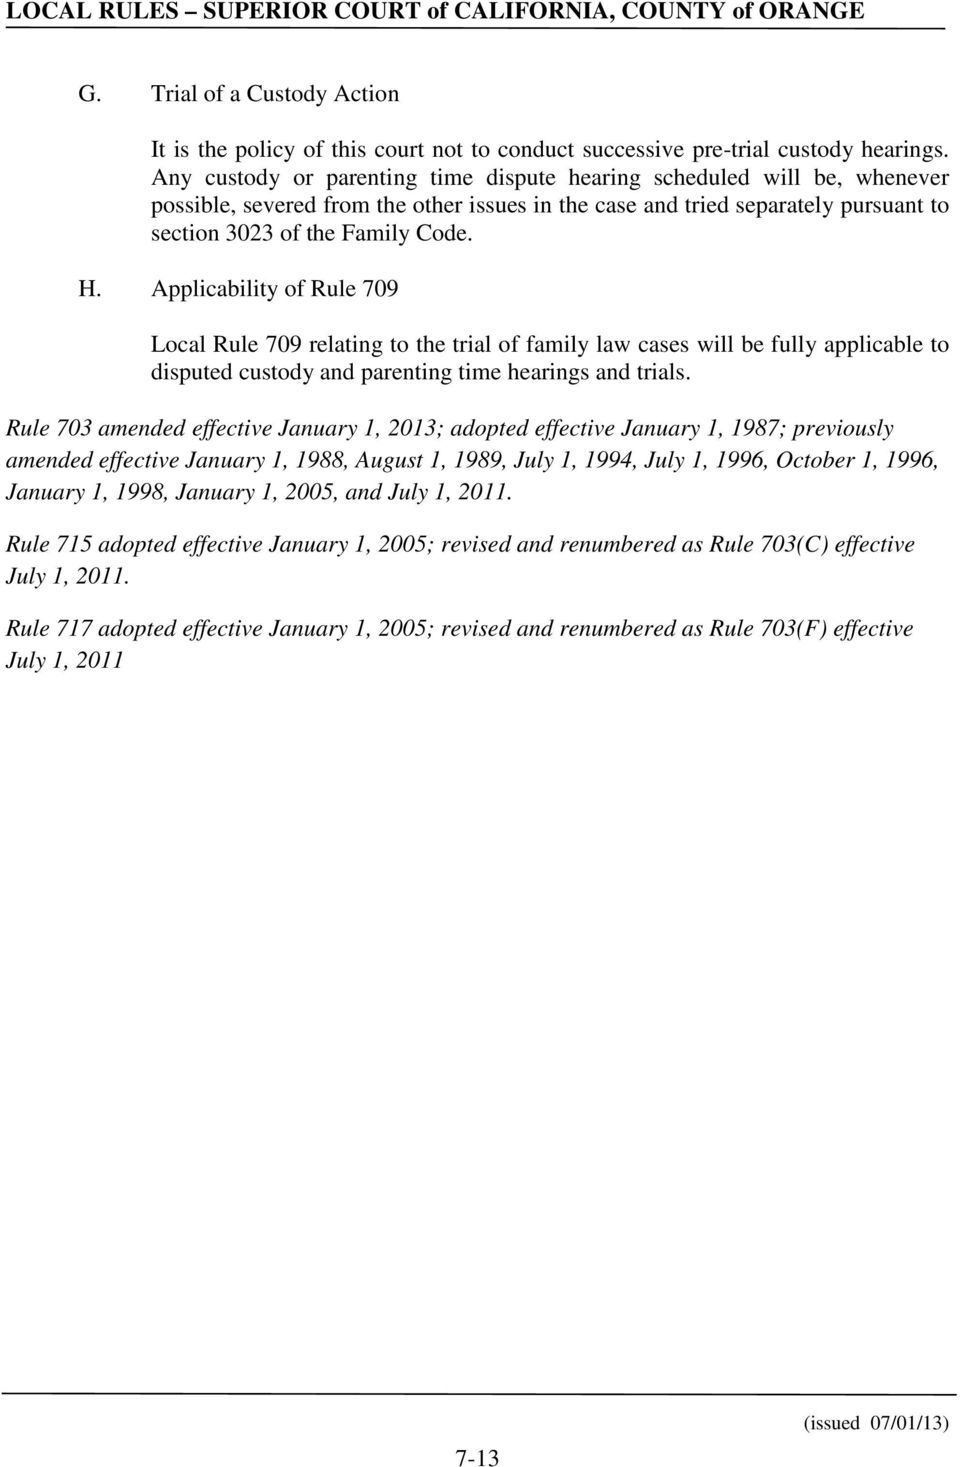 Applicability of Rule 709 Local Rule 709 relating to the trial of family law cases will be fully applicable to disputed custody and parenting time hearings and trials.